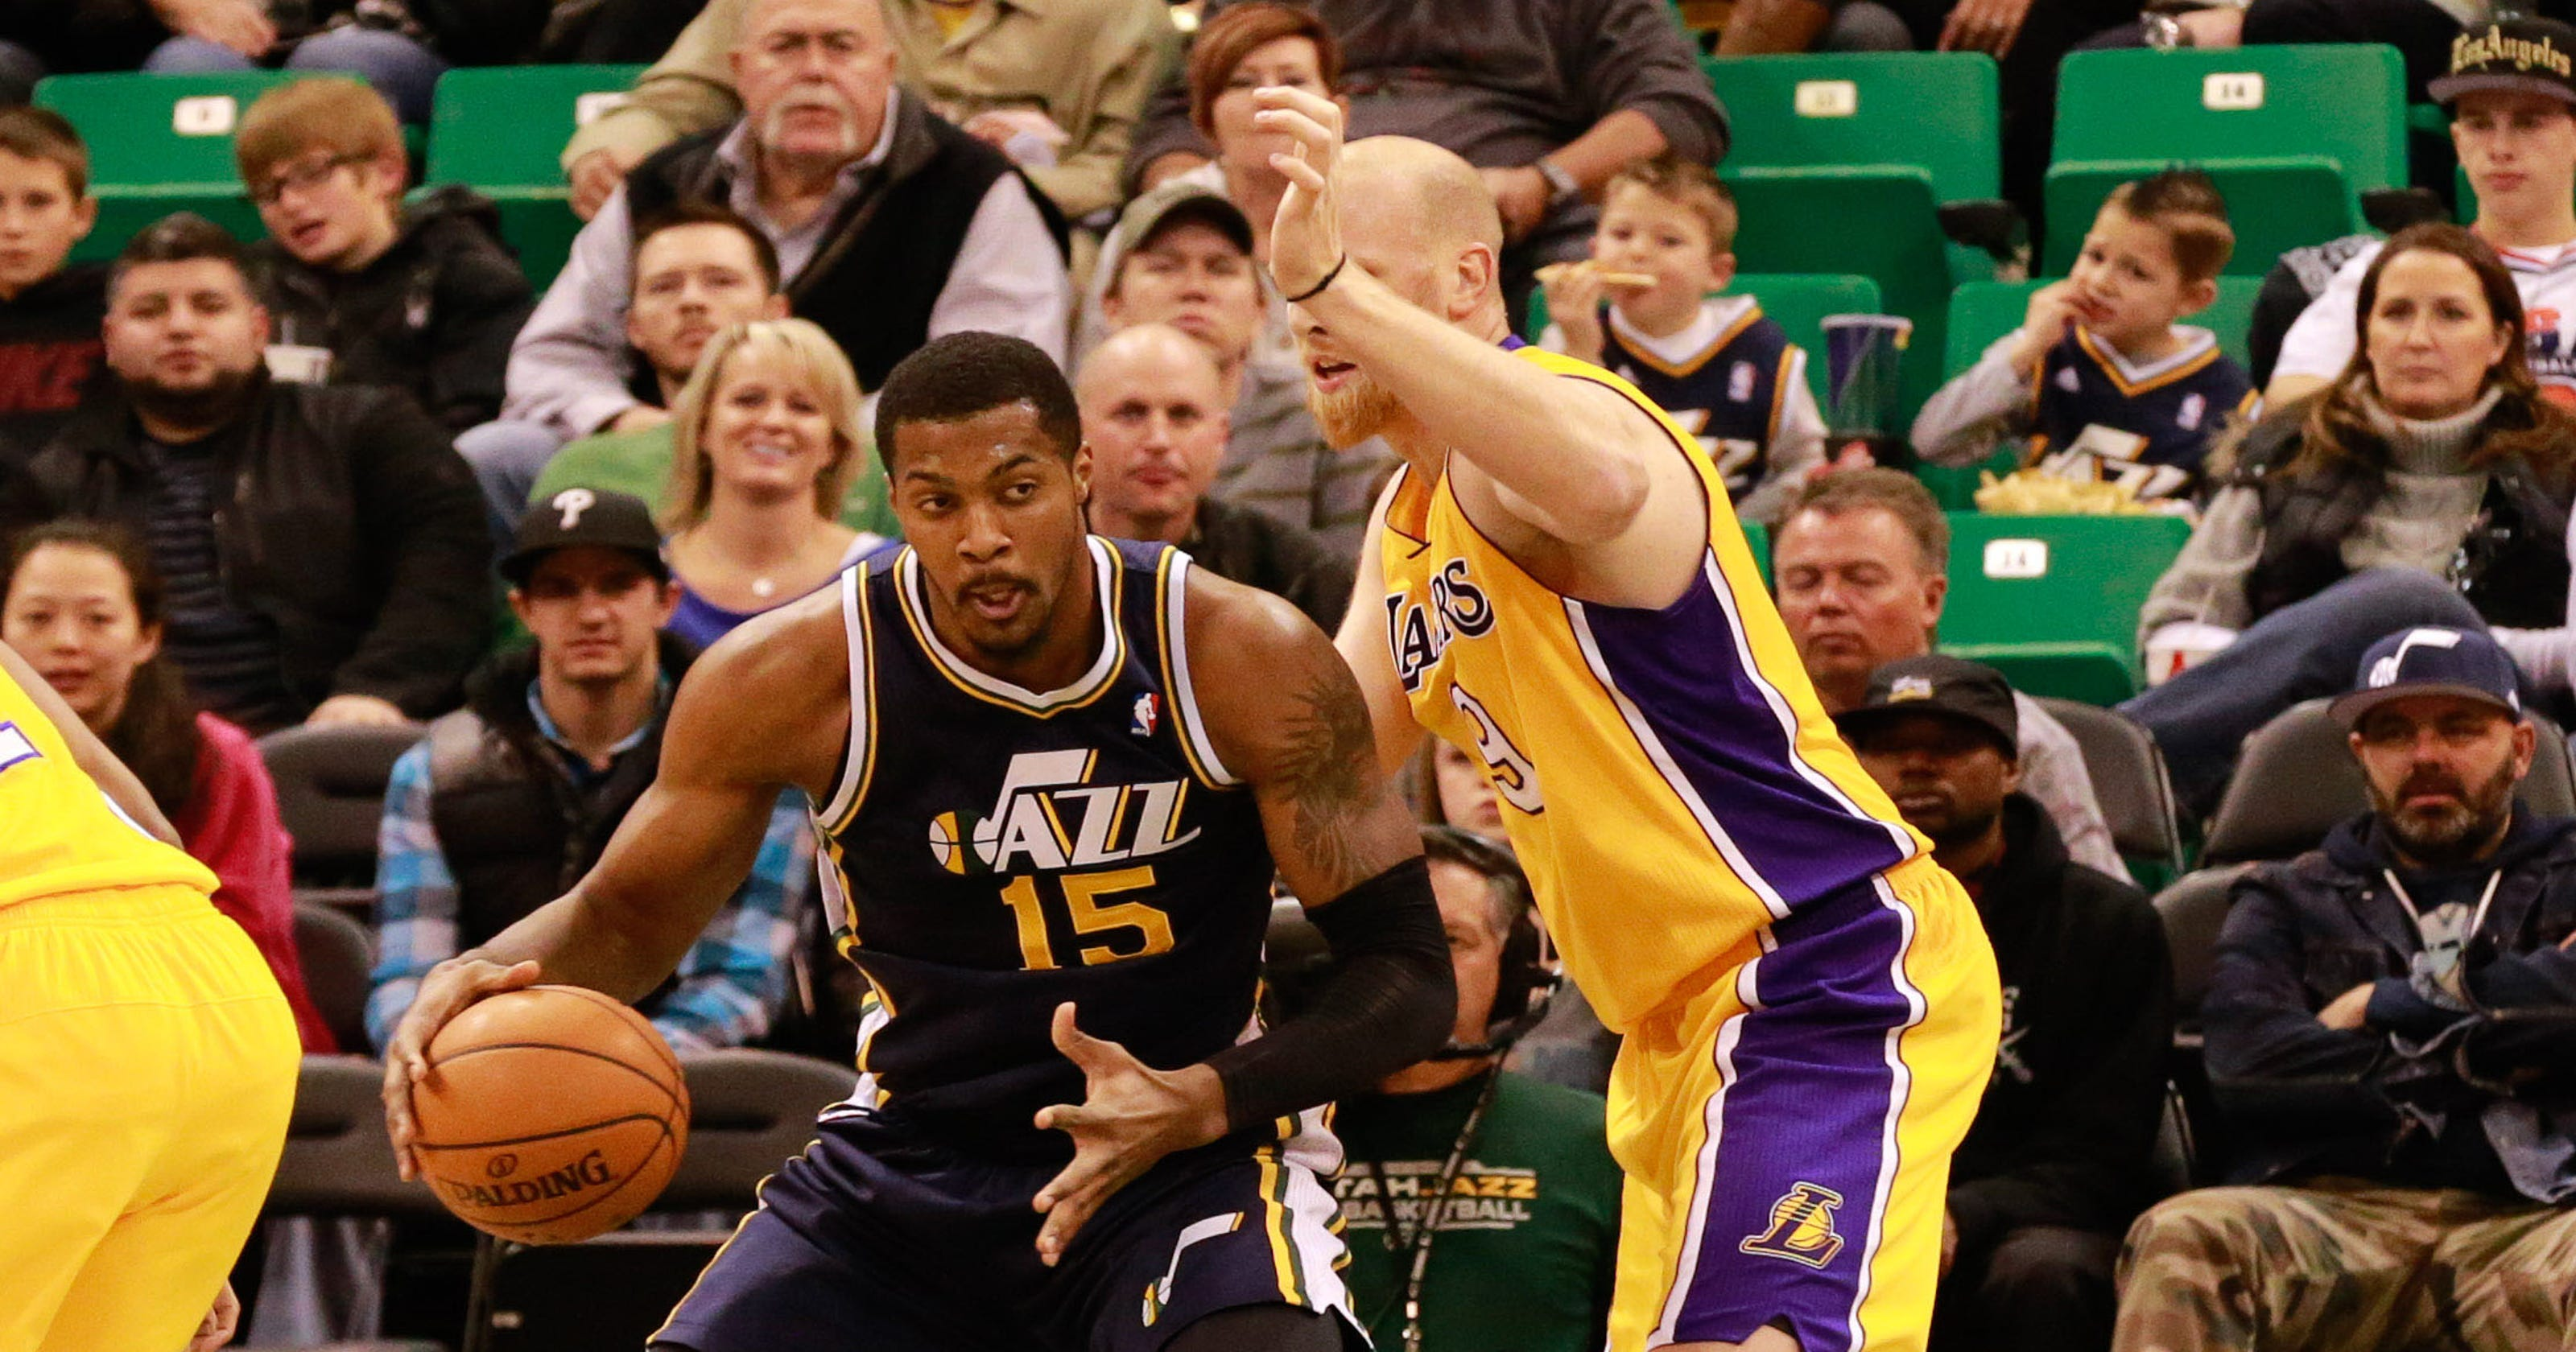 498d8f5e1a5c Derrick Favors  dunk lifts Jazz past depleted Lakers